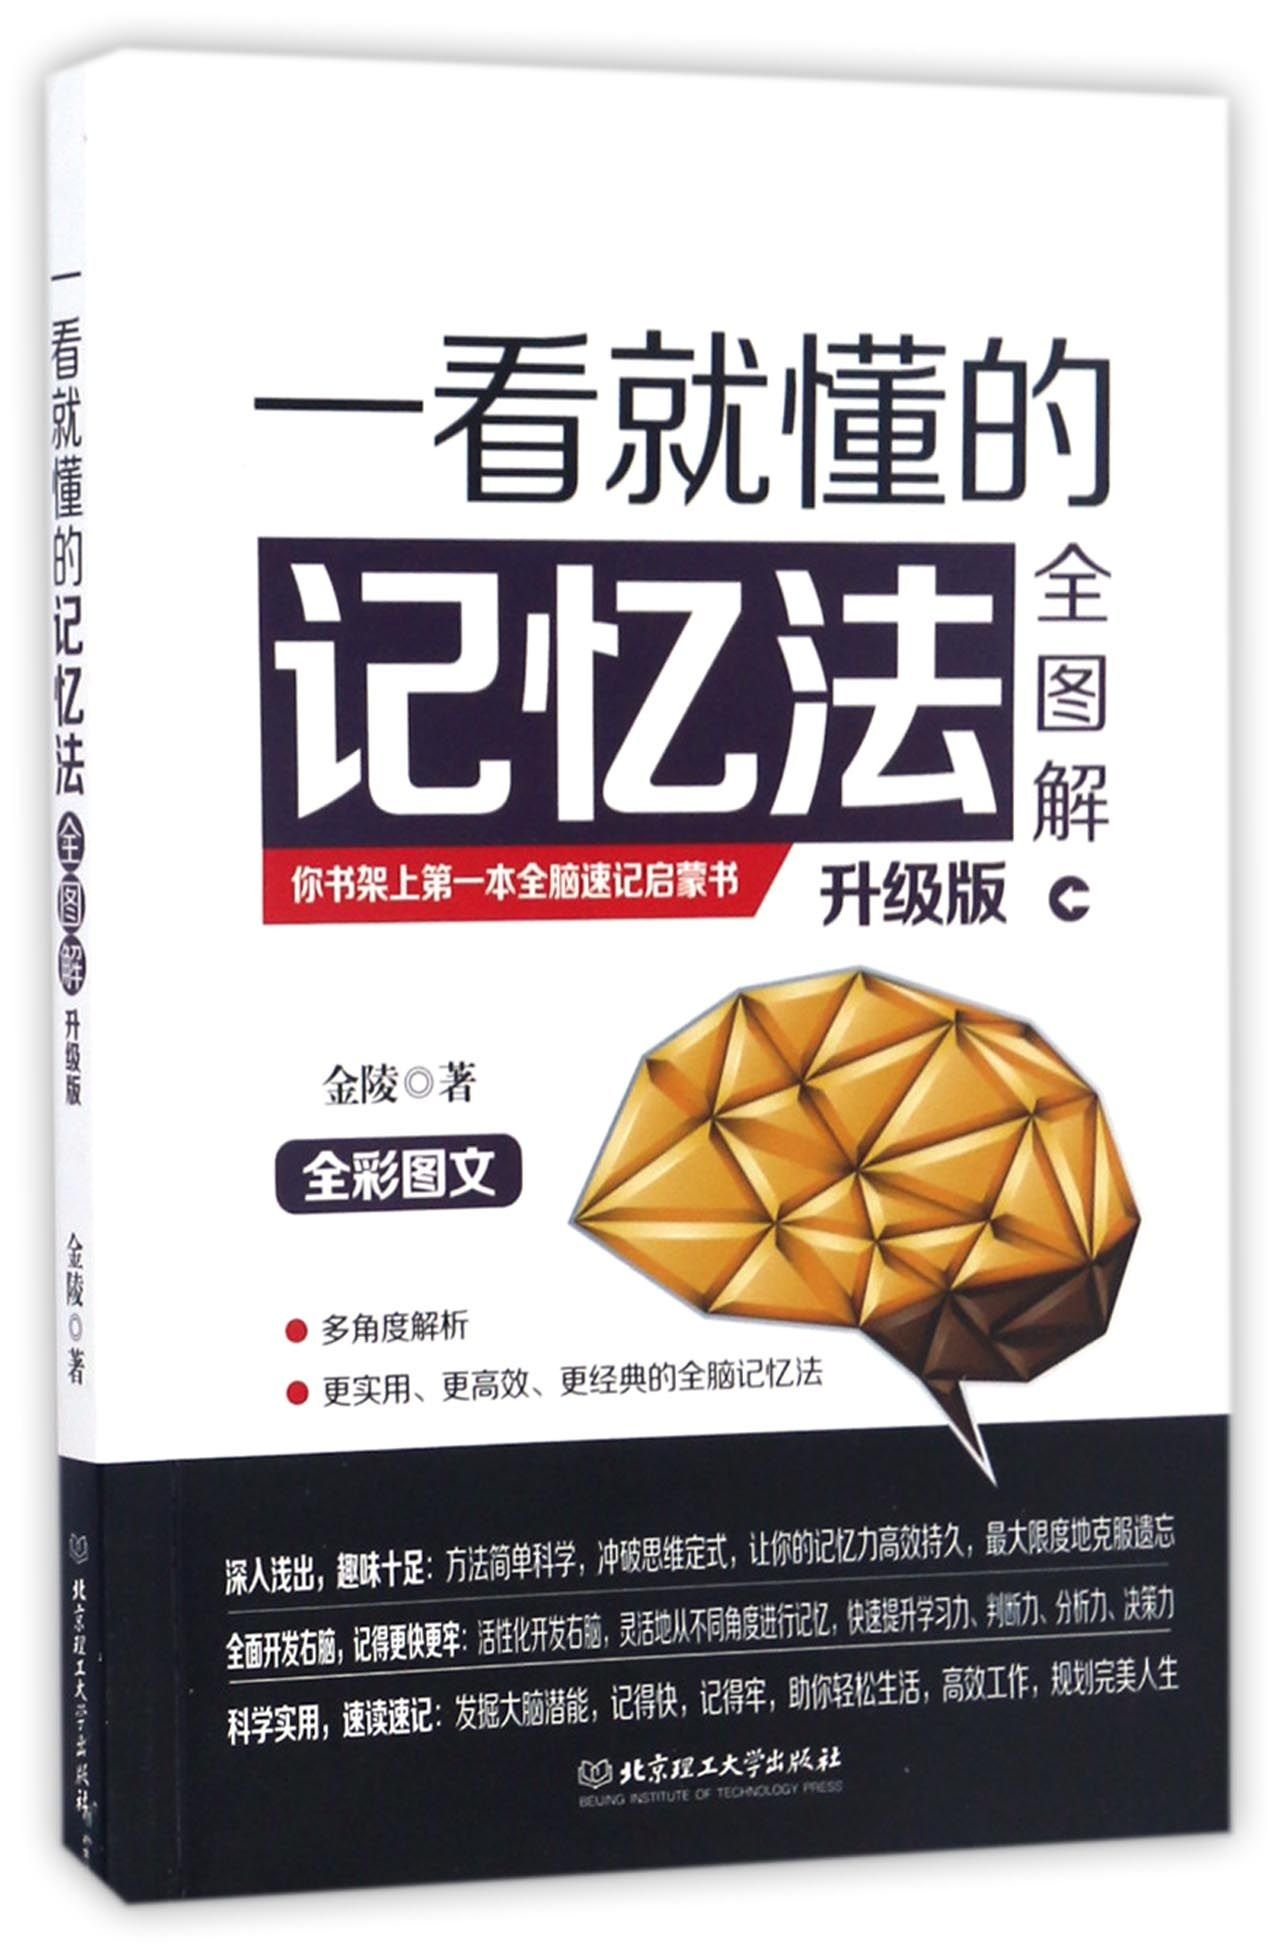 Read Online An Illustrated Mnemonics to Be Apprehended at a Glance (Chinese Edition) PDF